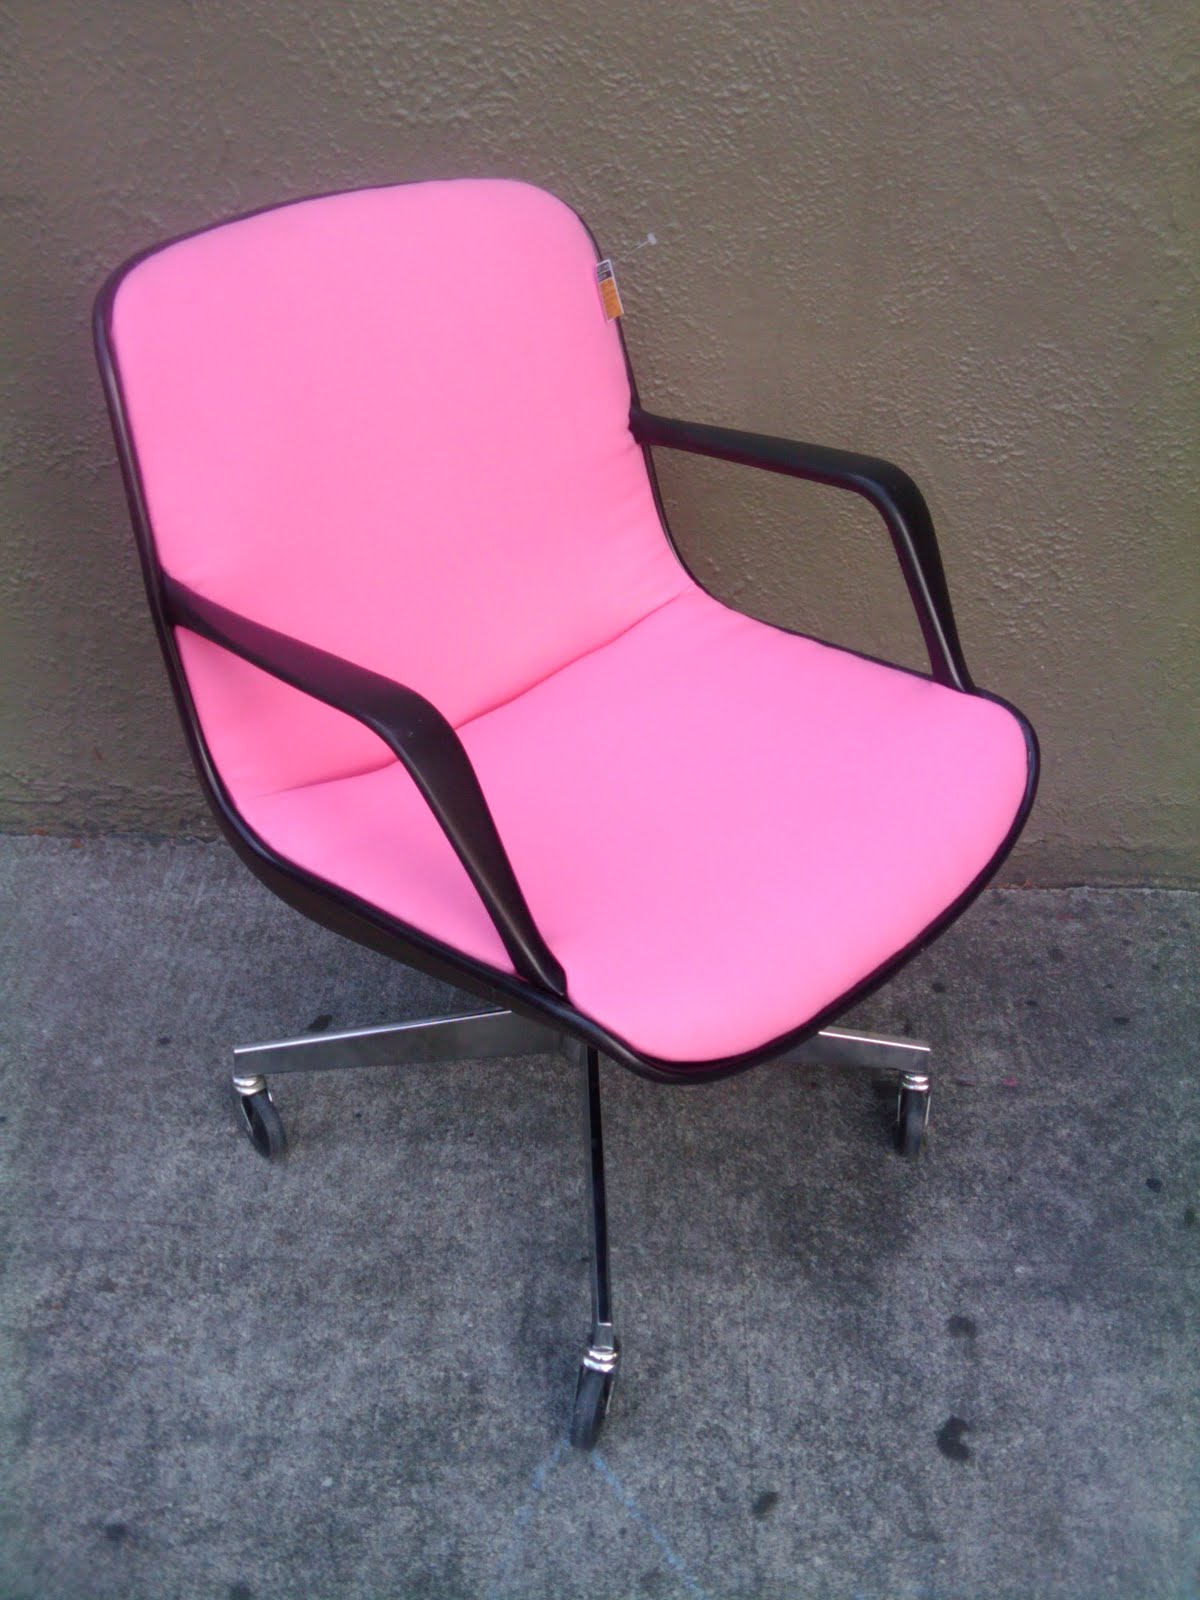 Rad mod fully re stored vintage steelcase task chairs for Vintage 70s chair